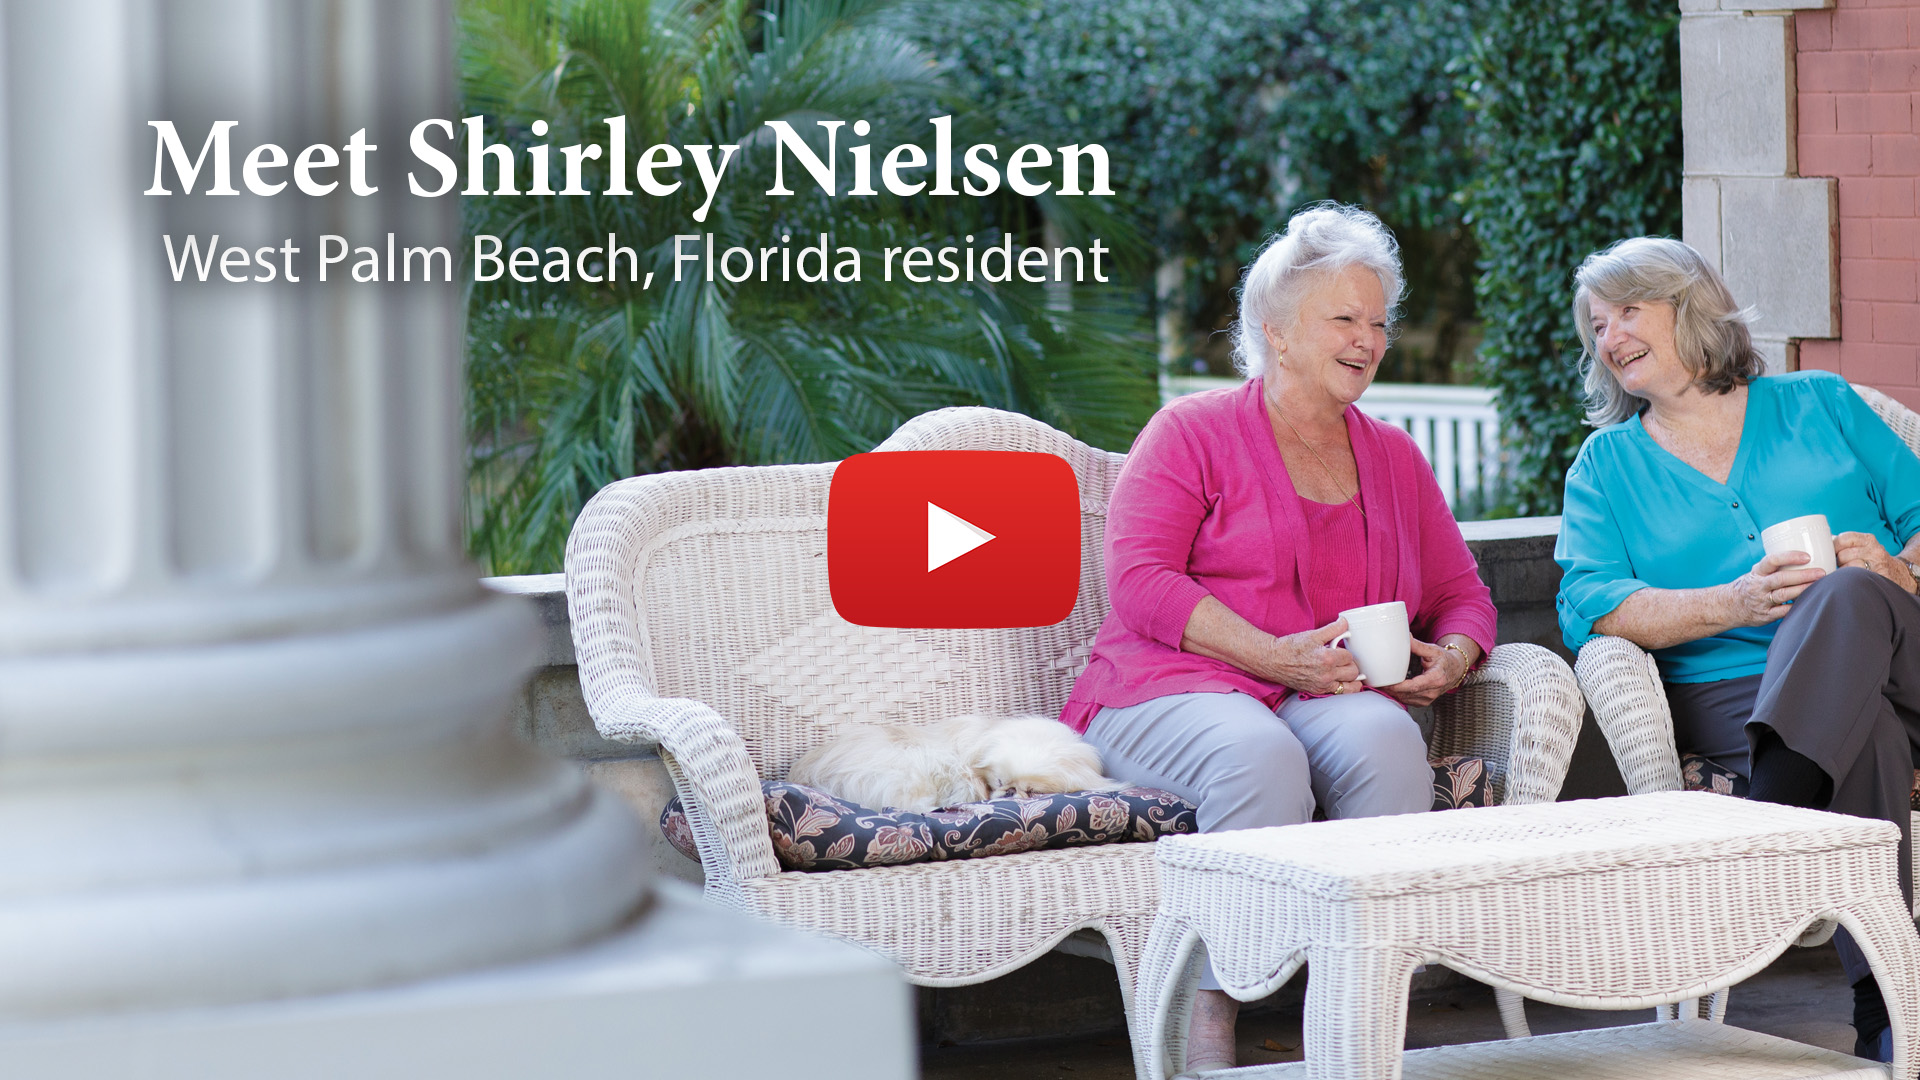 Meet Shirley Nielson